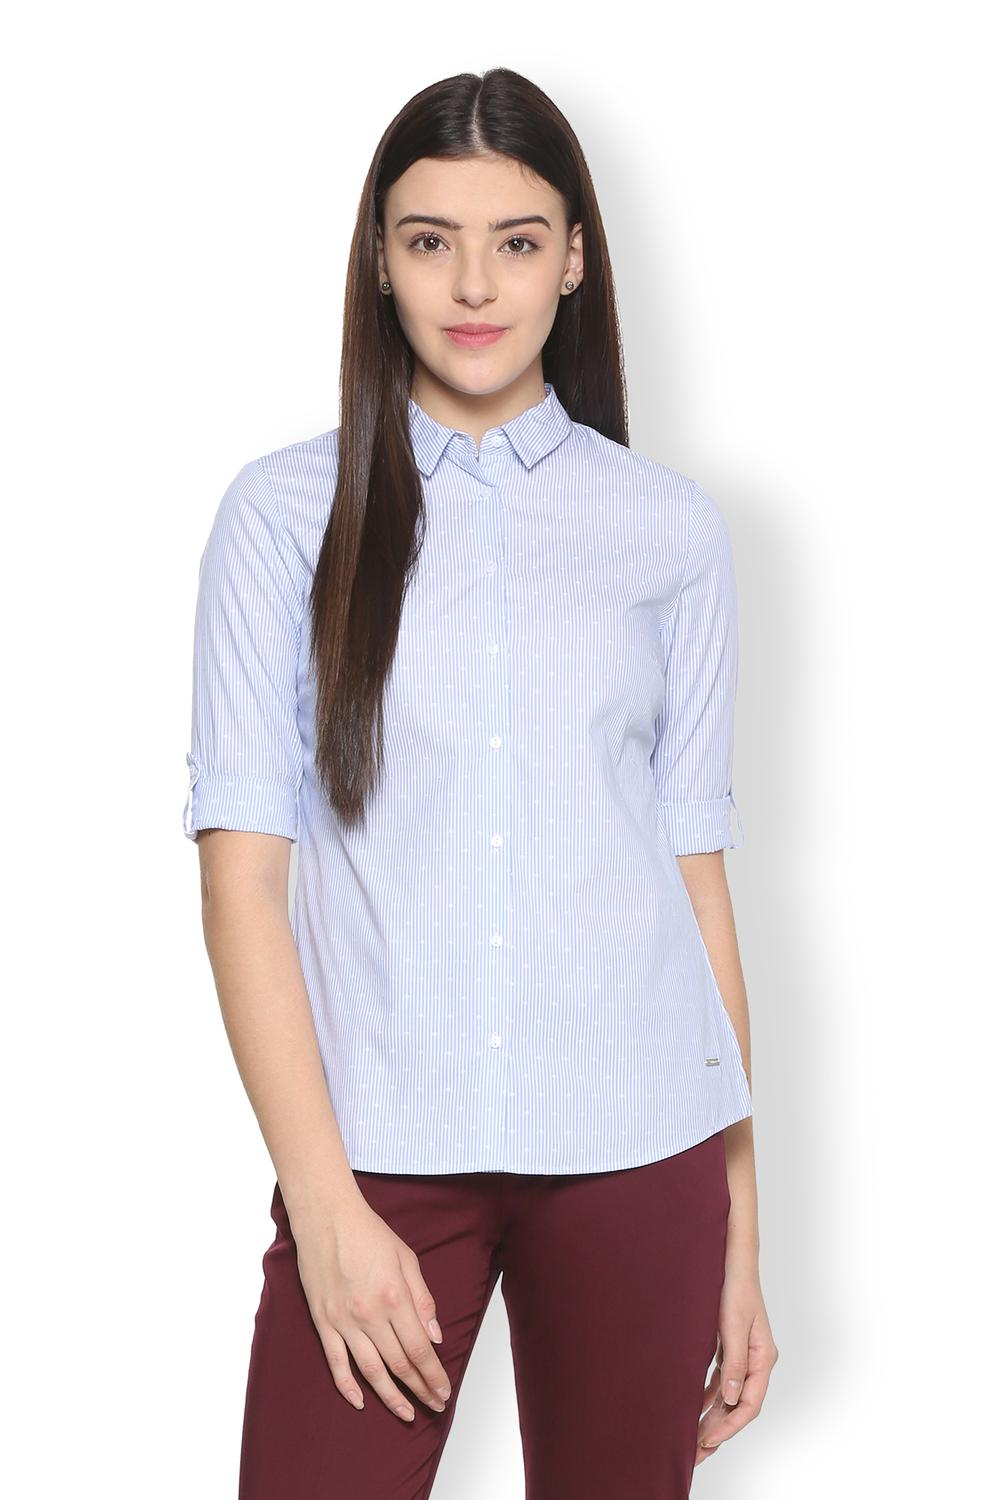 389d6655c009 Van Heusen Woman Shirts & Blouses, Van Heusen Blue Shirt for Women at  Vanheusenindia.com